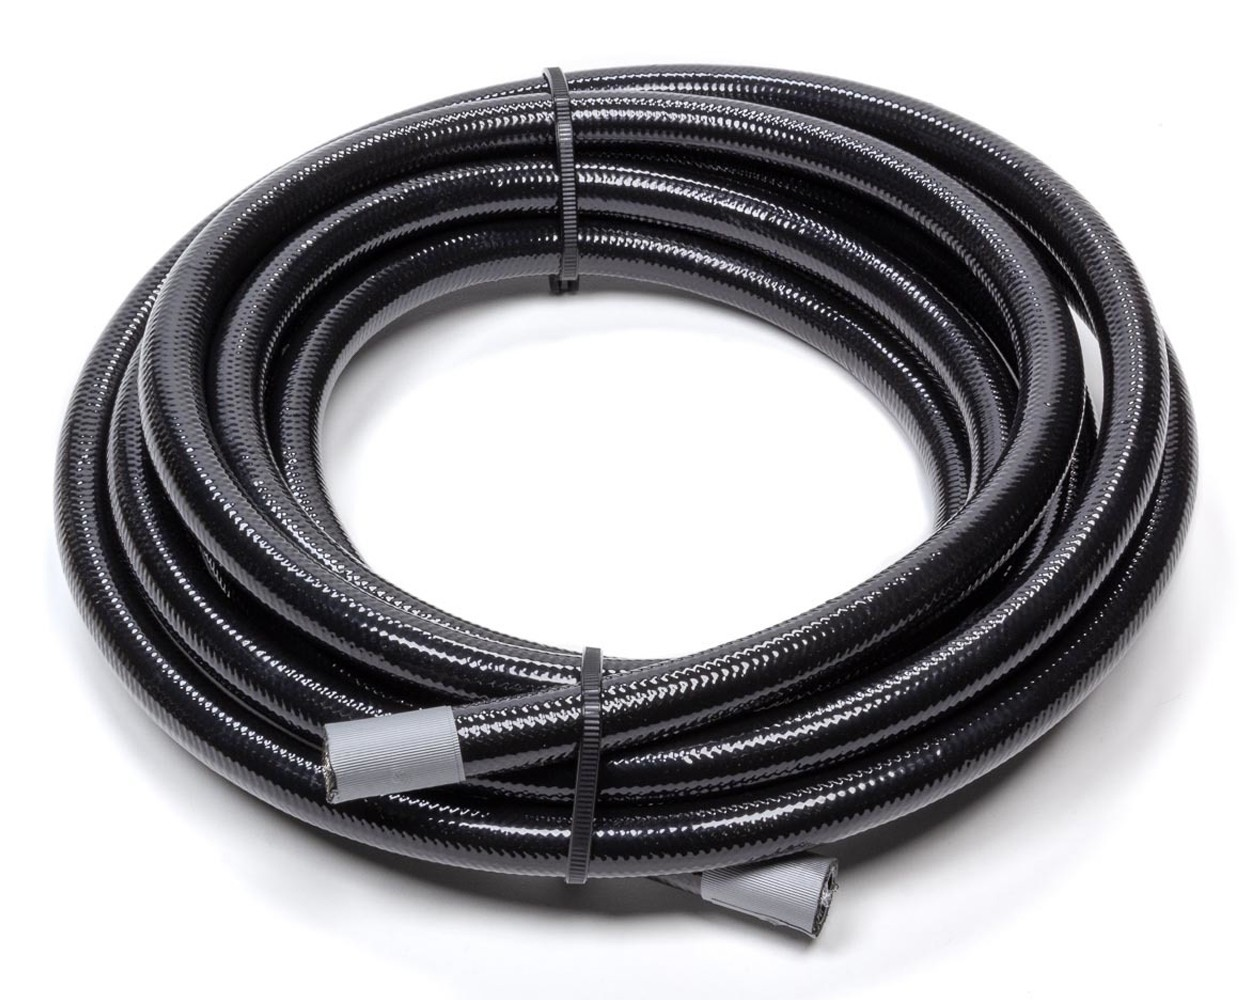 Fragola 601028 Hose, Series 6000, 8 AN, 10 ft, Braided Stainless, PTFE, Black, Each